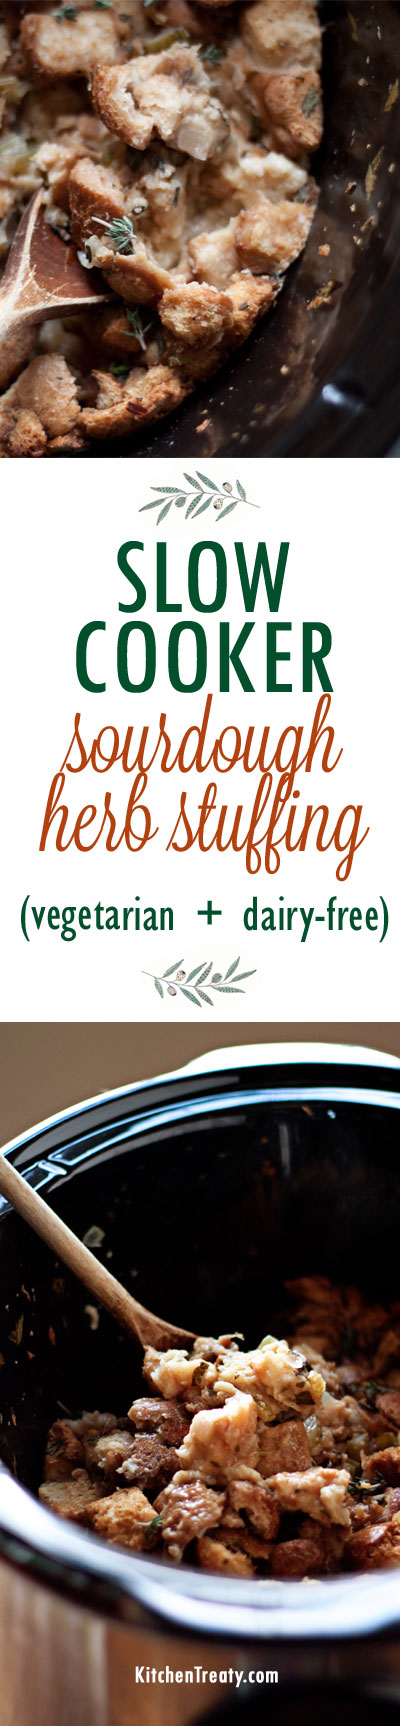 slow-cooker-sourdough-herb-